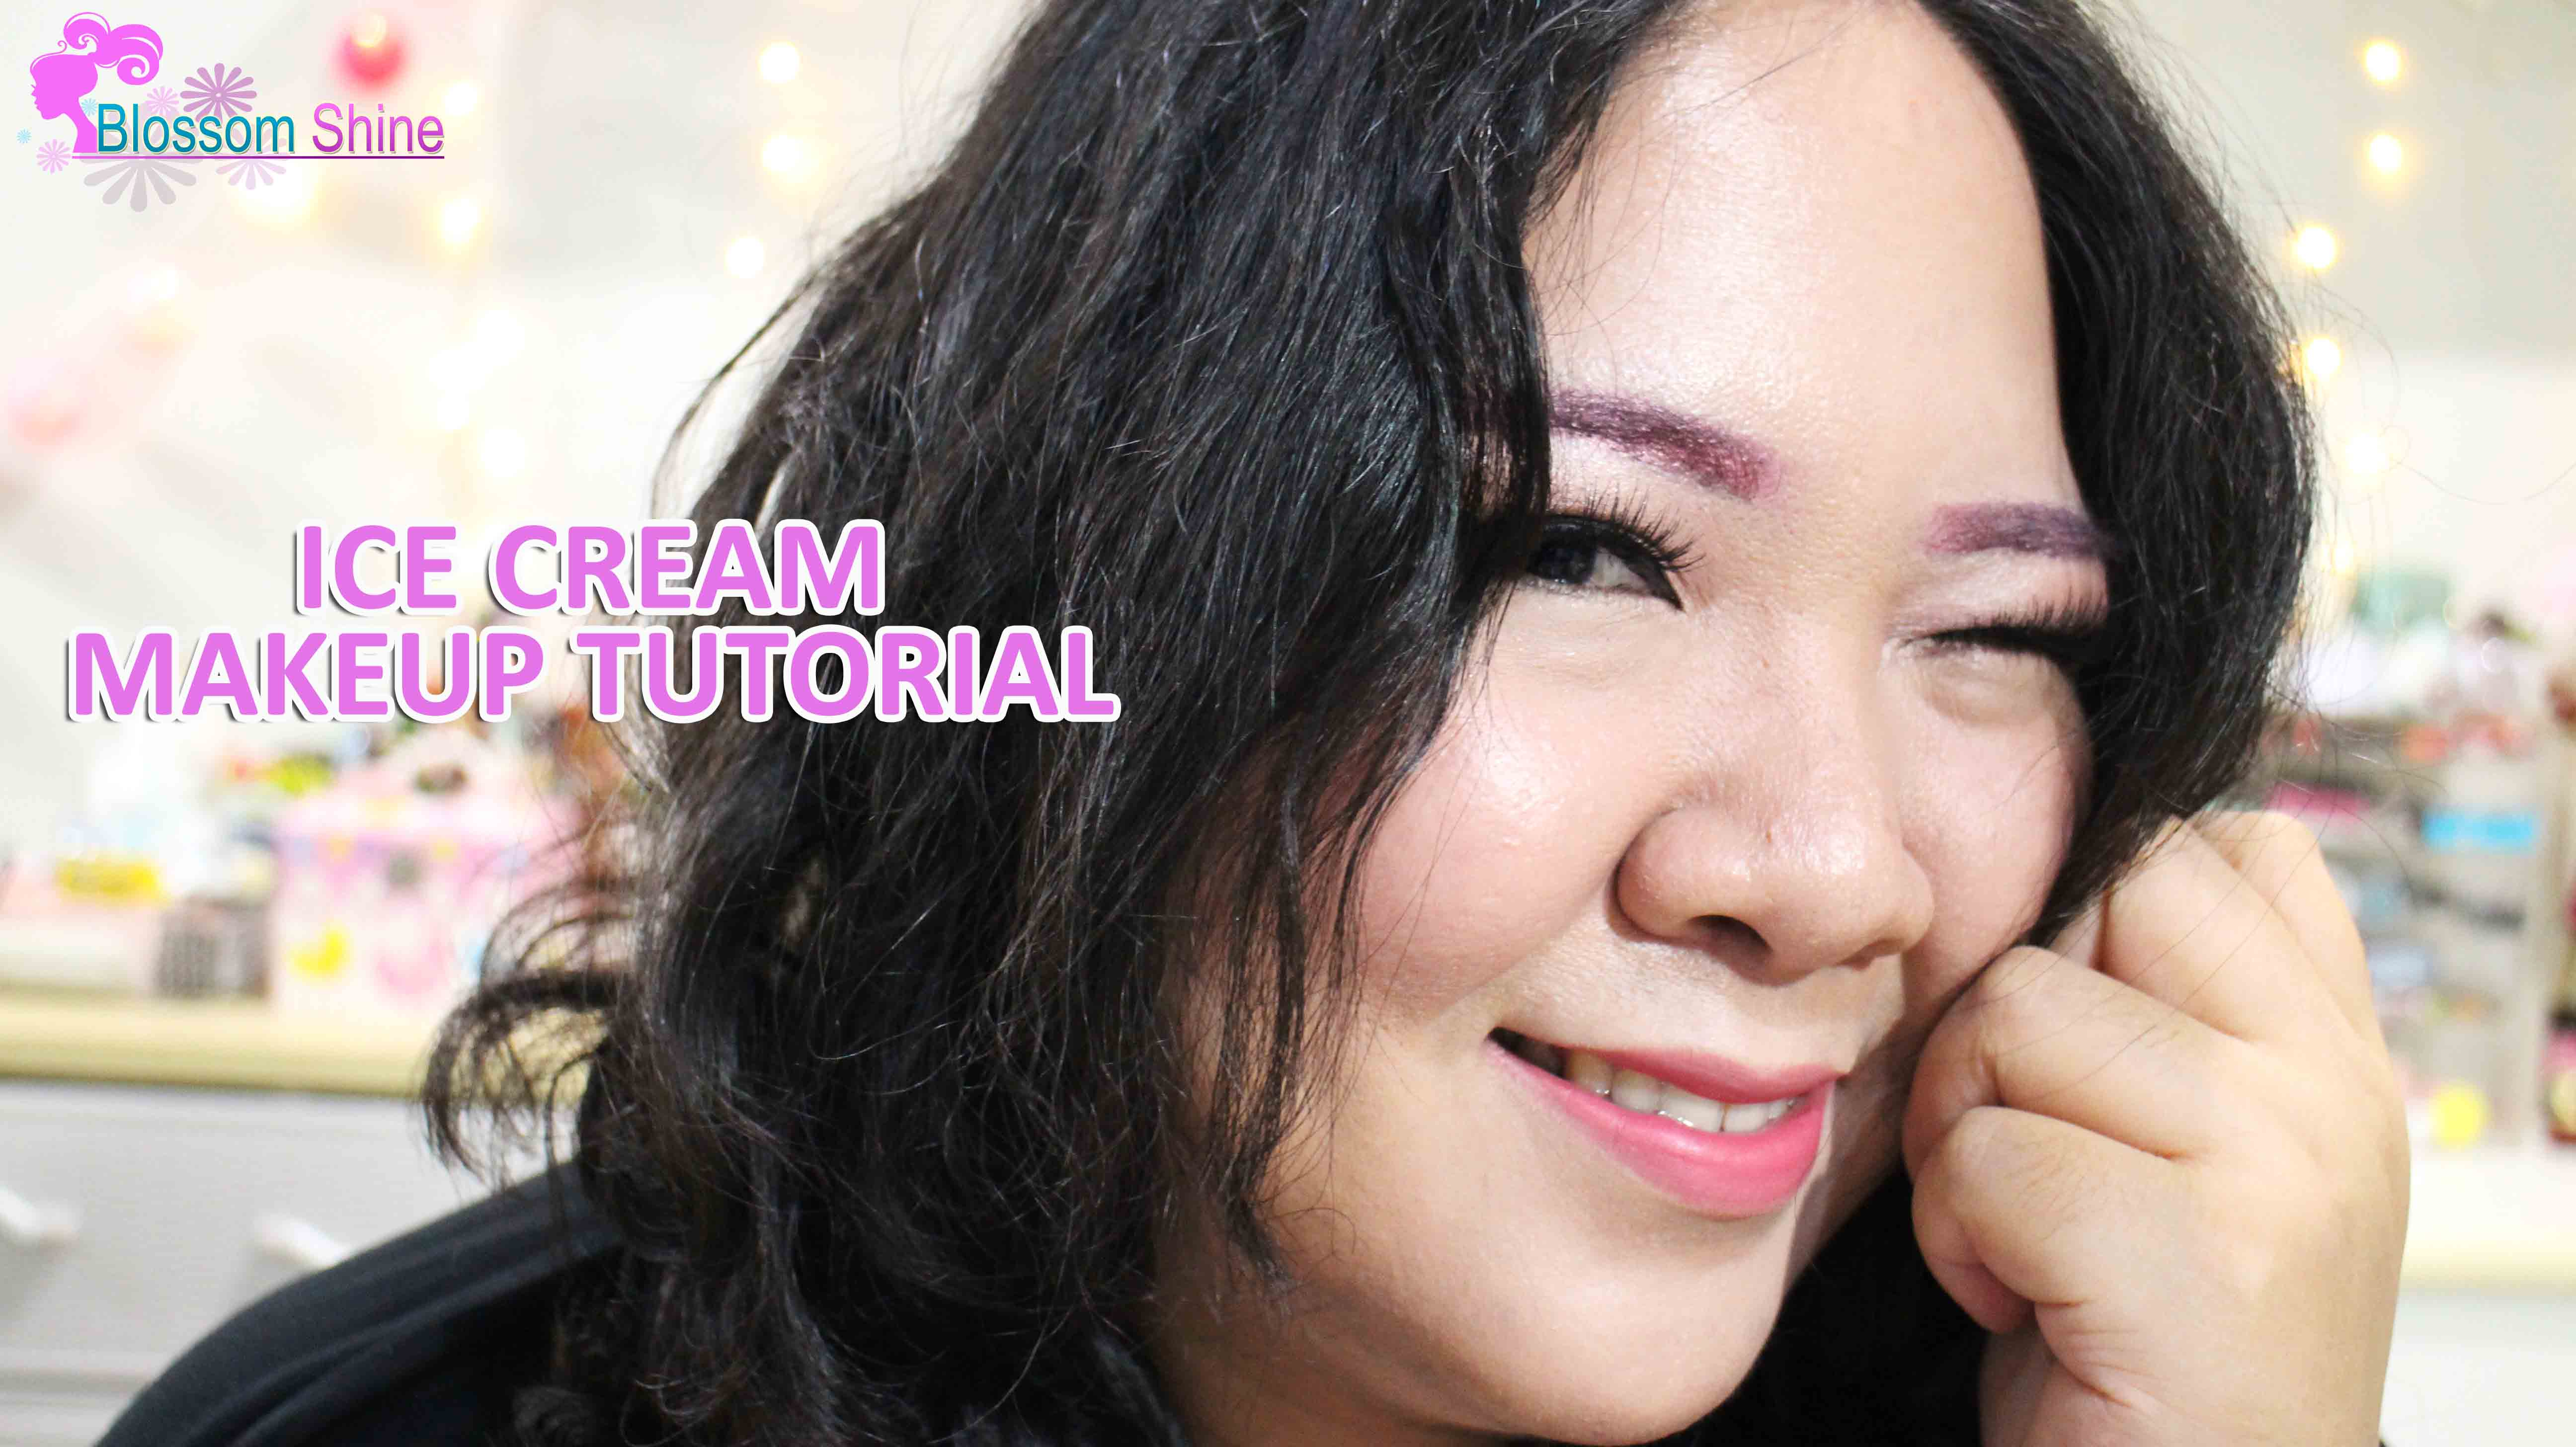 Ice Cream Makeup Tutorial [Makeup Collaboration]